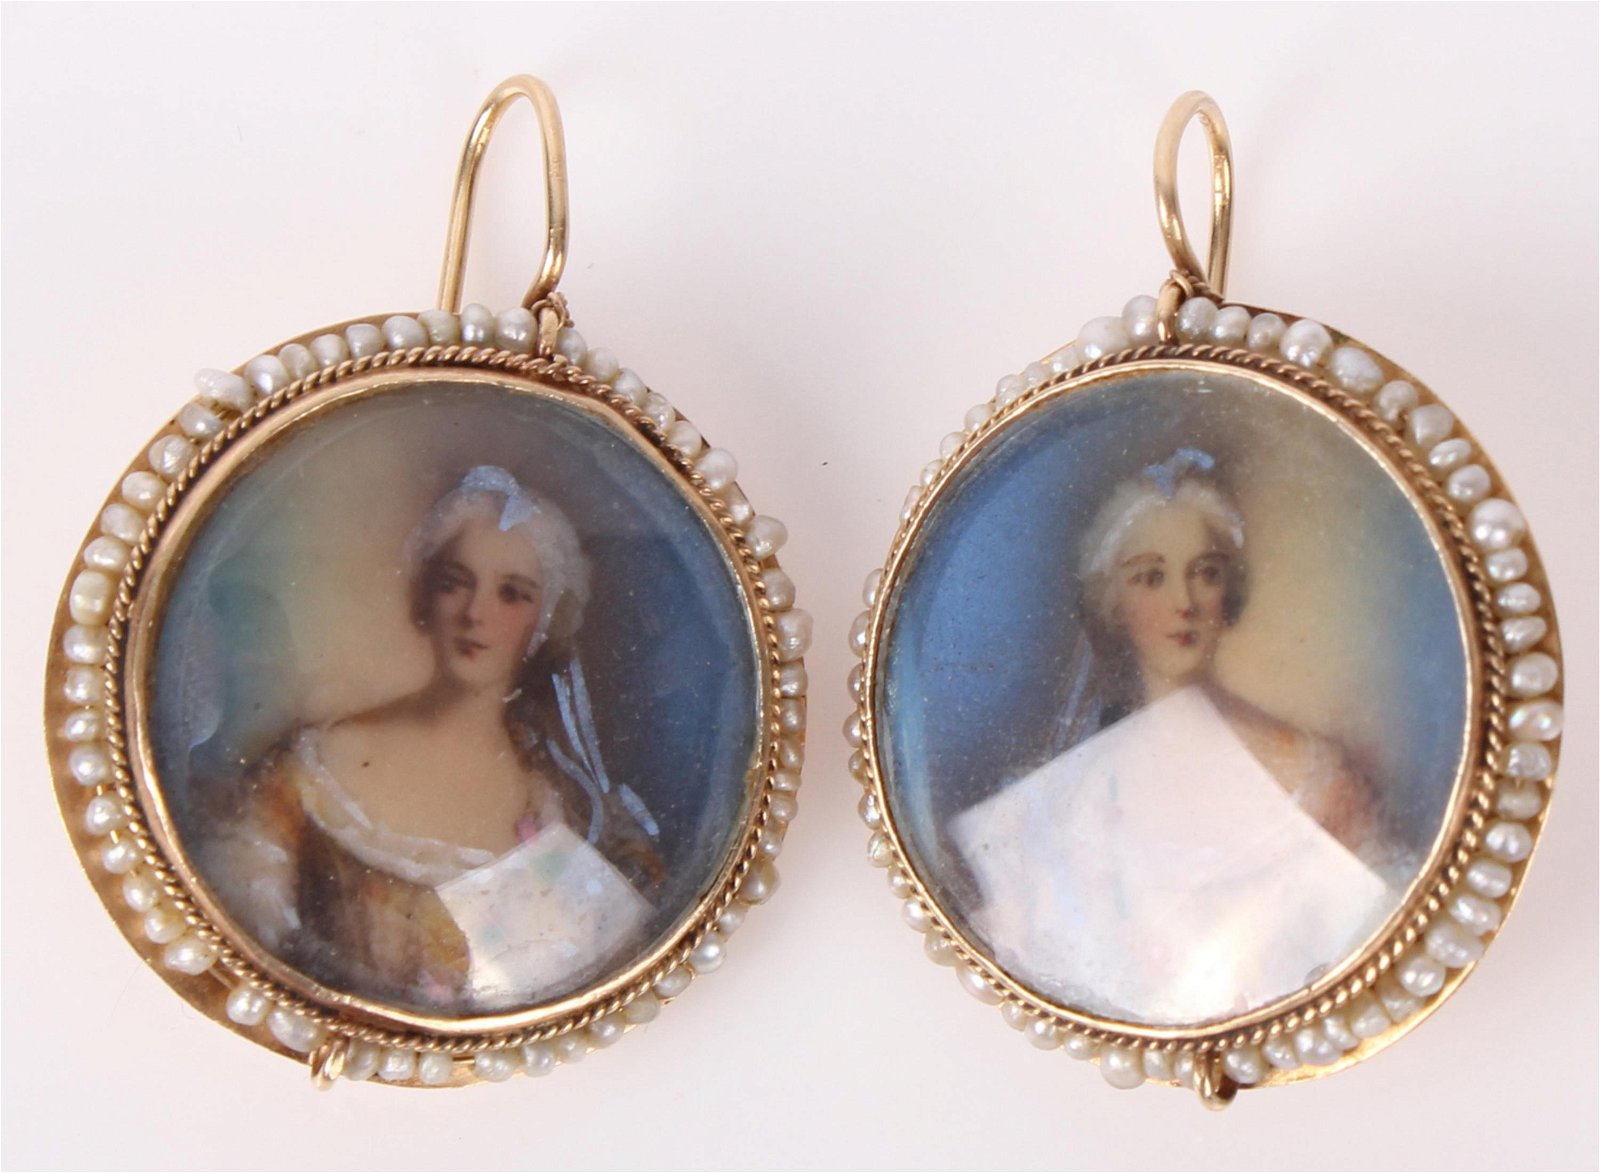 LADIES 14K GOLD PEARL PAINTED PORTRAIT EARRINGS